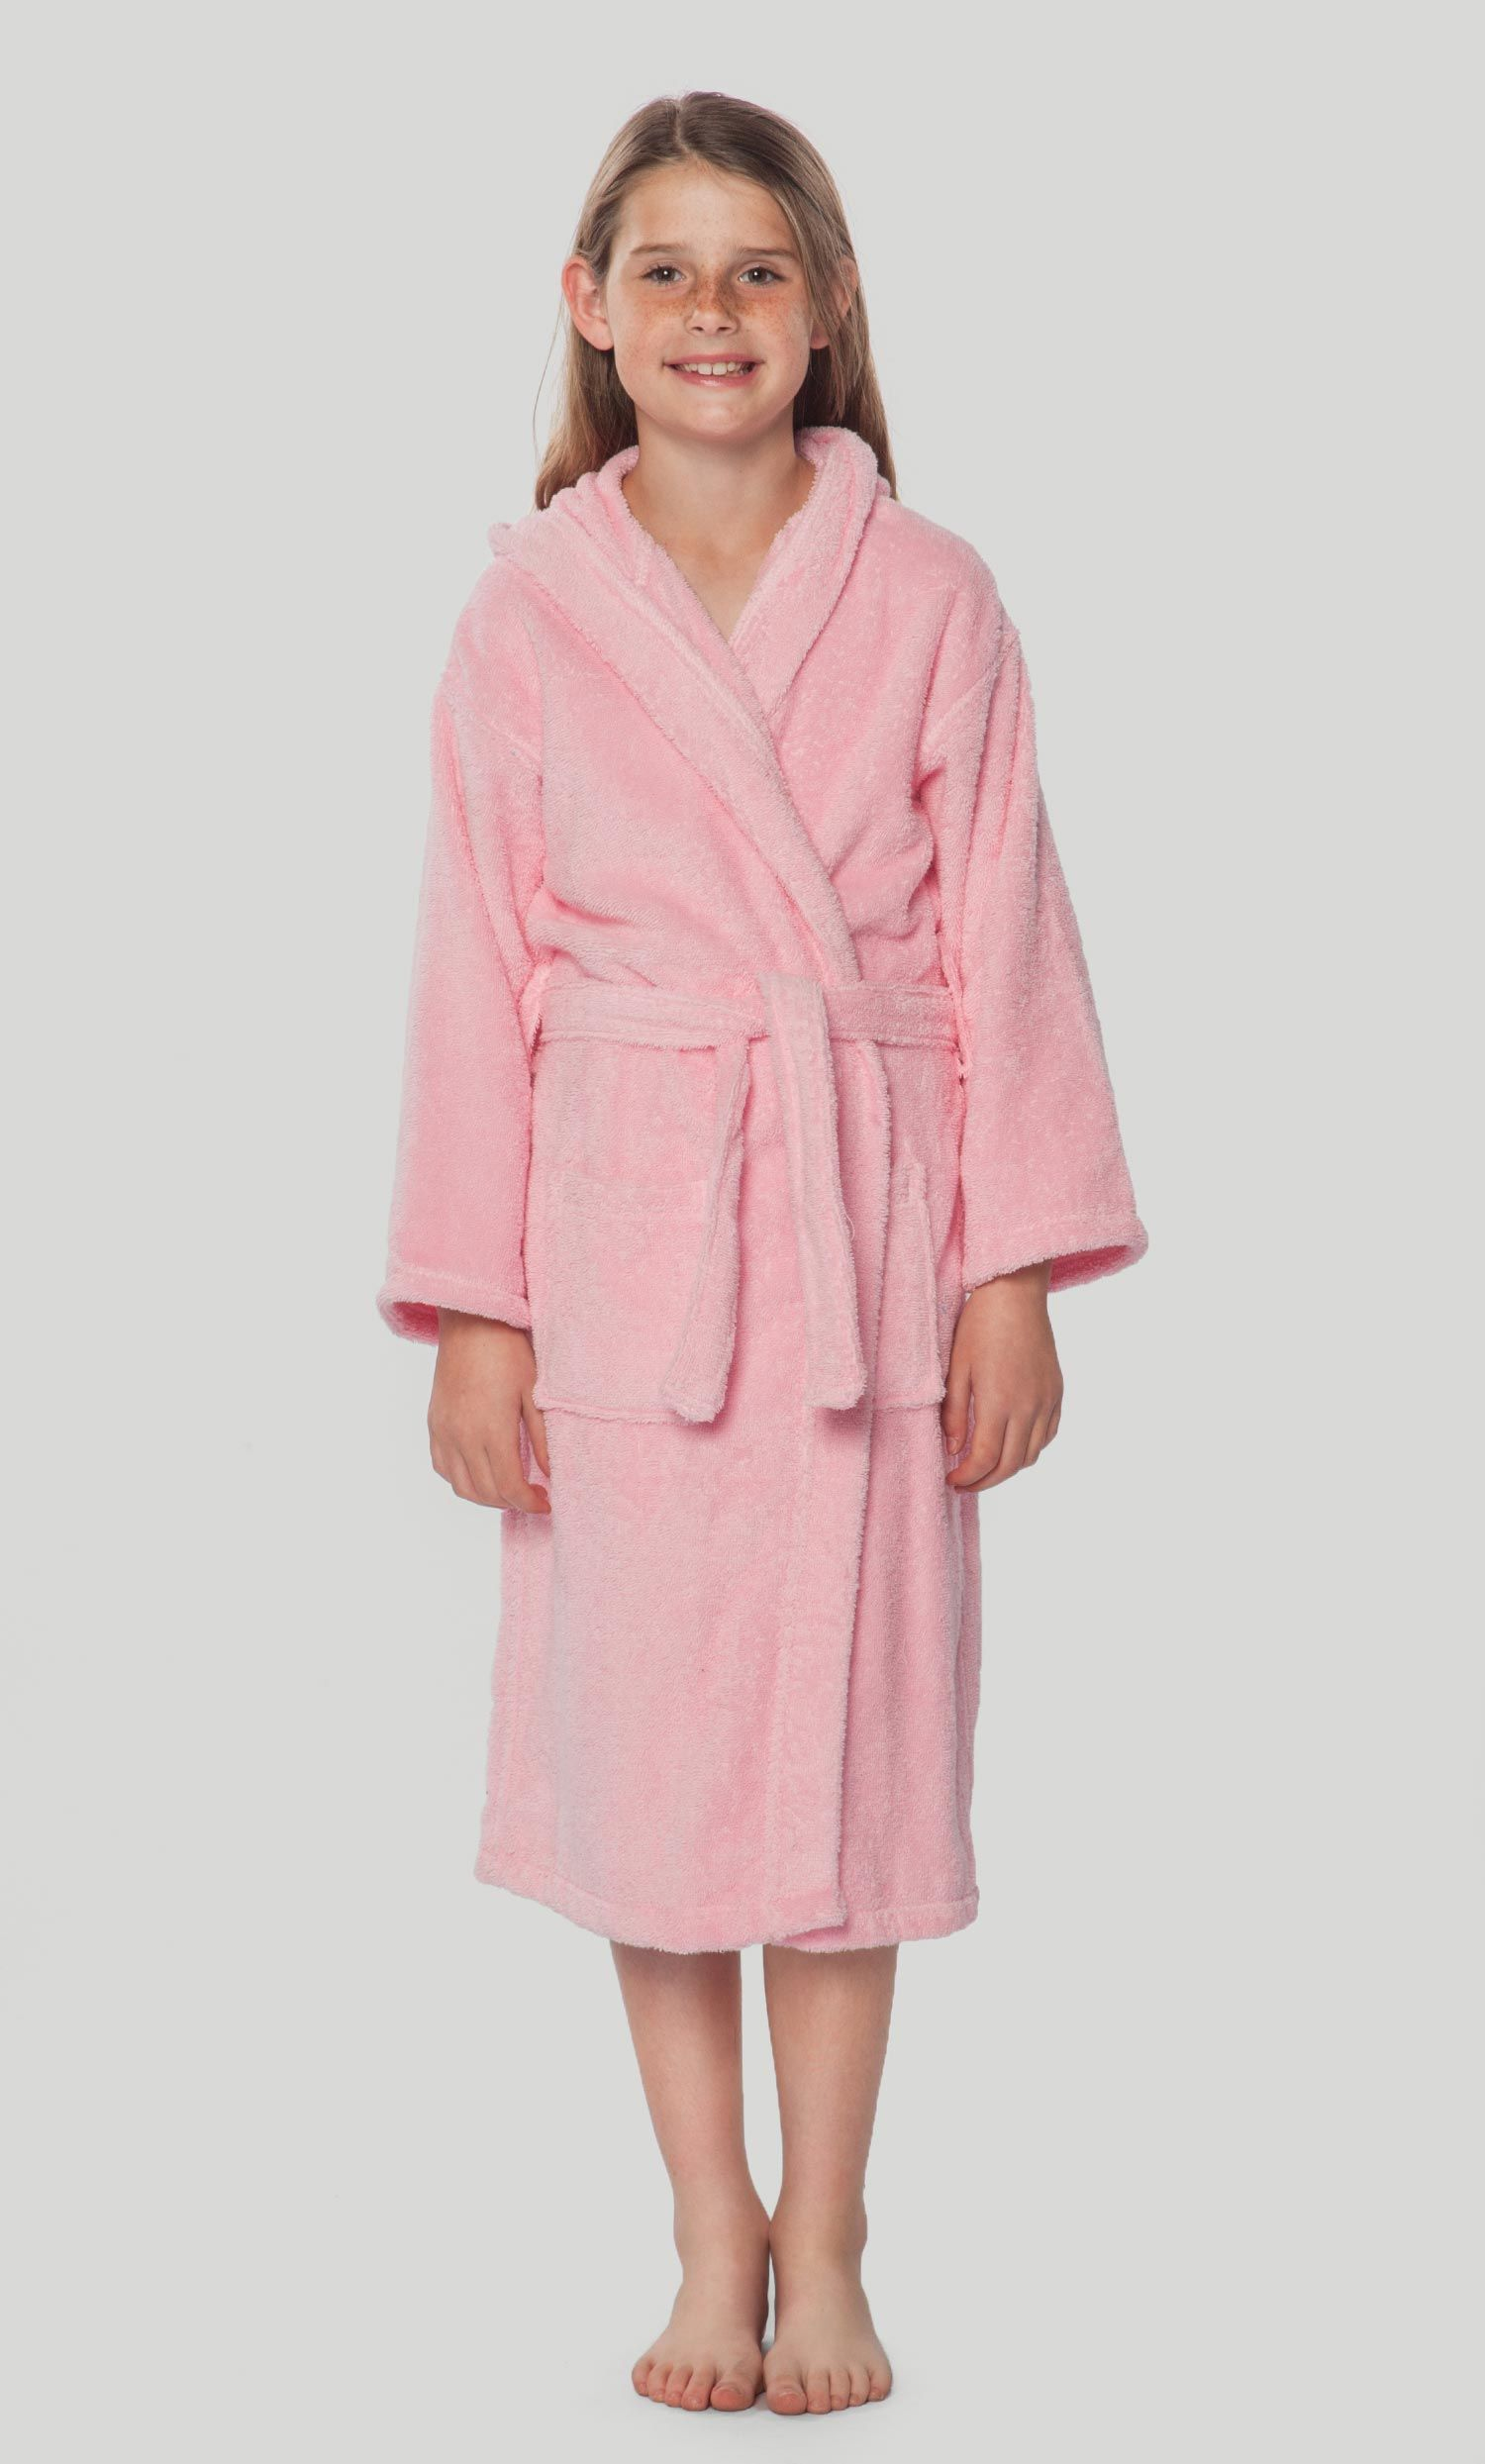 Kids Bathrobes    Terry Kids Hooded Bathrobes    100% Turkish Cotton Pink Hooded  Terry Kid s Bathrobe - Wholesale bathrobes d361f5eae